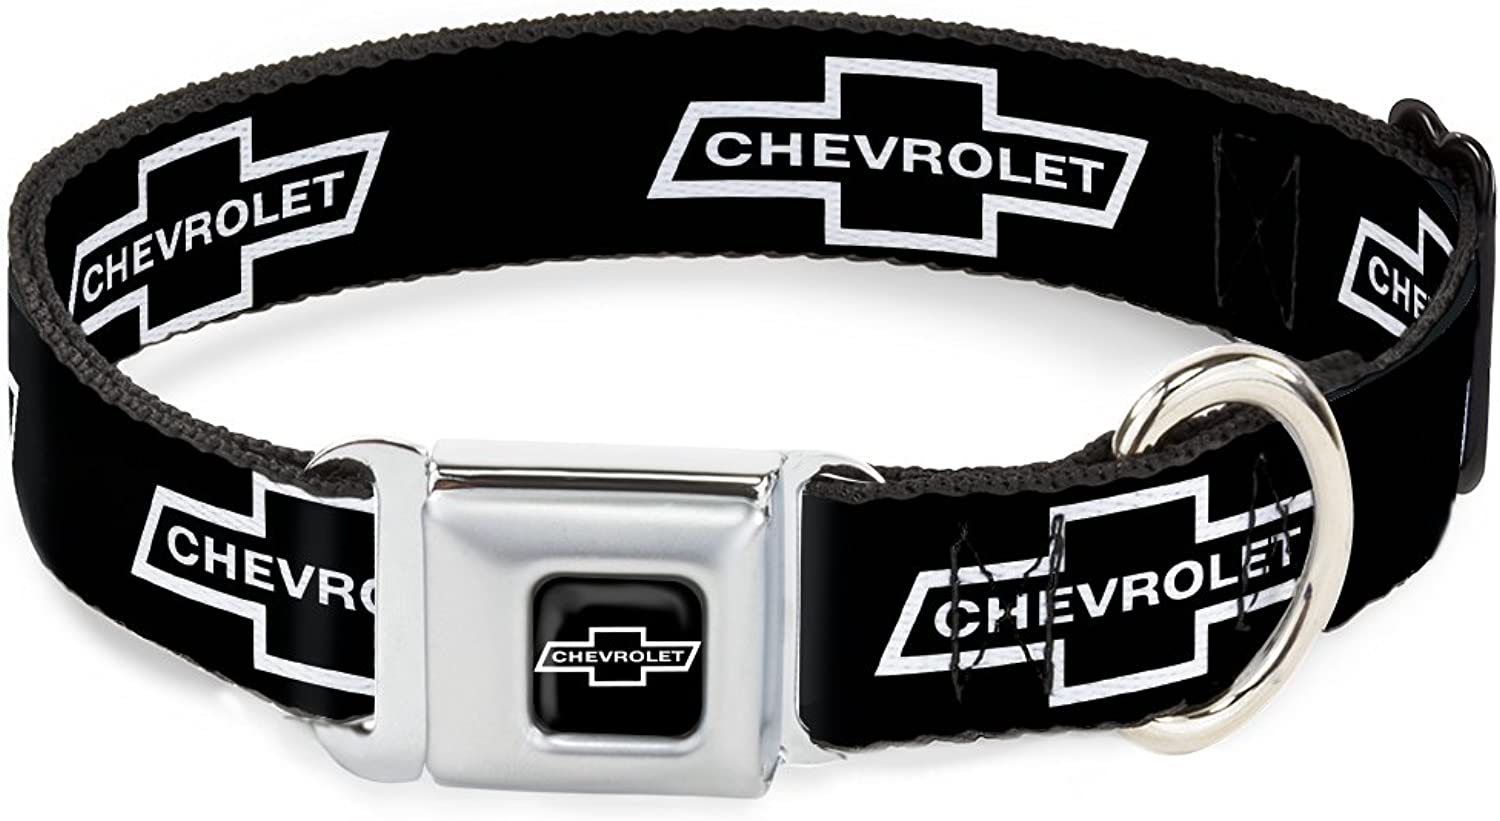 BuckleDown DCWCH044WL 1832  CHAX1965 Chevrolet Bowtie Full color Black White Dog Collar, Wide Large